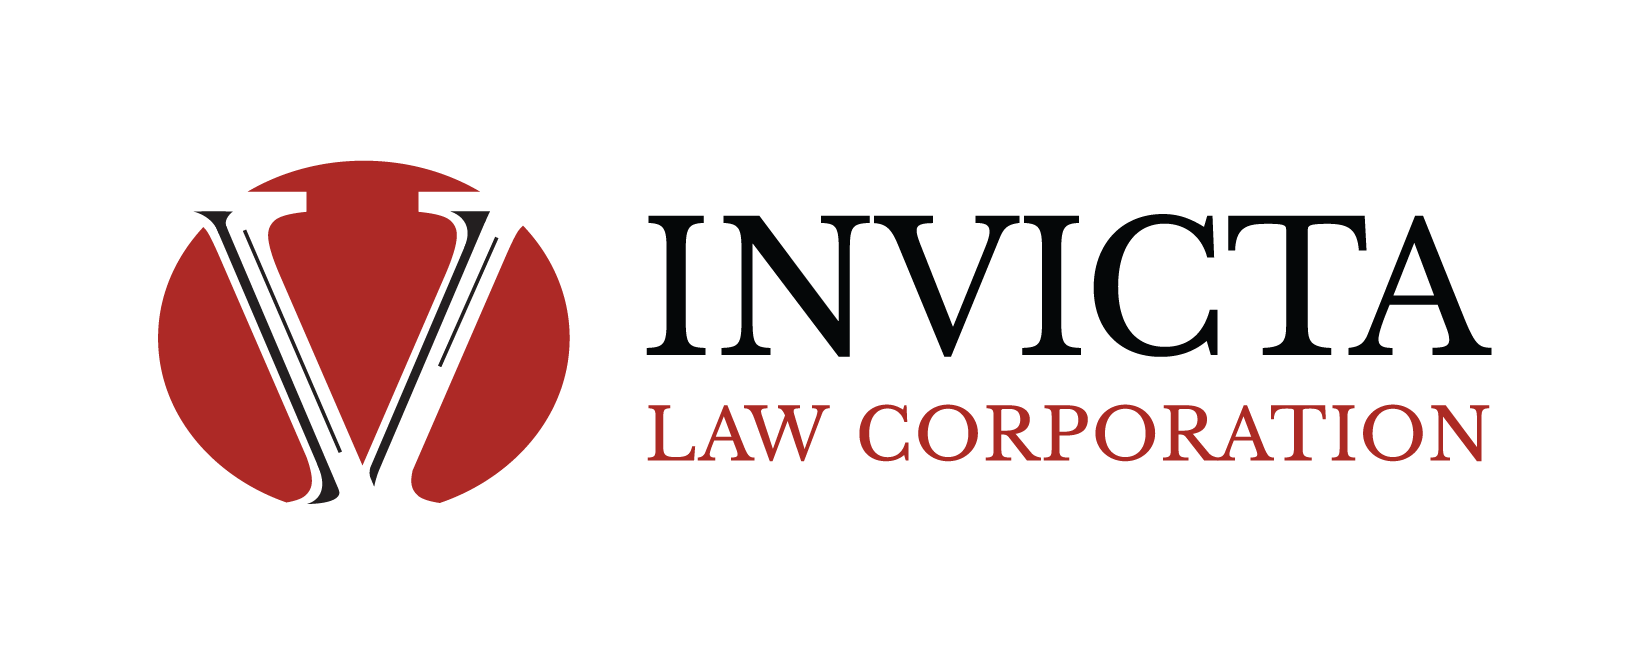 Invicta Law Corporation